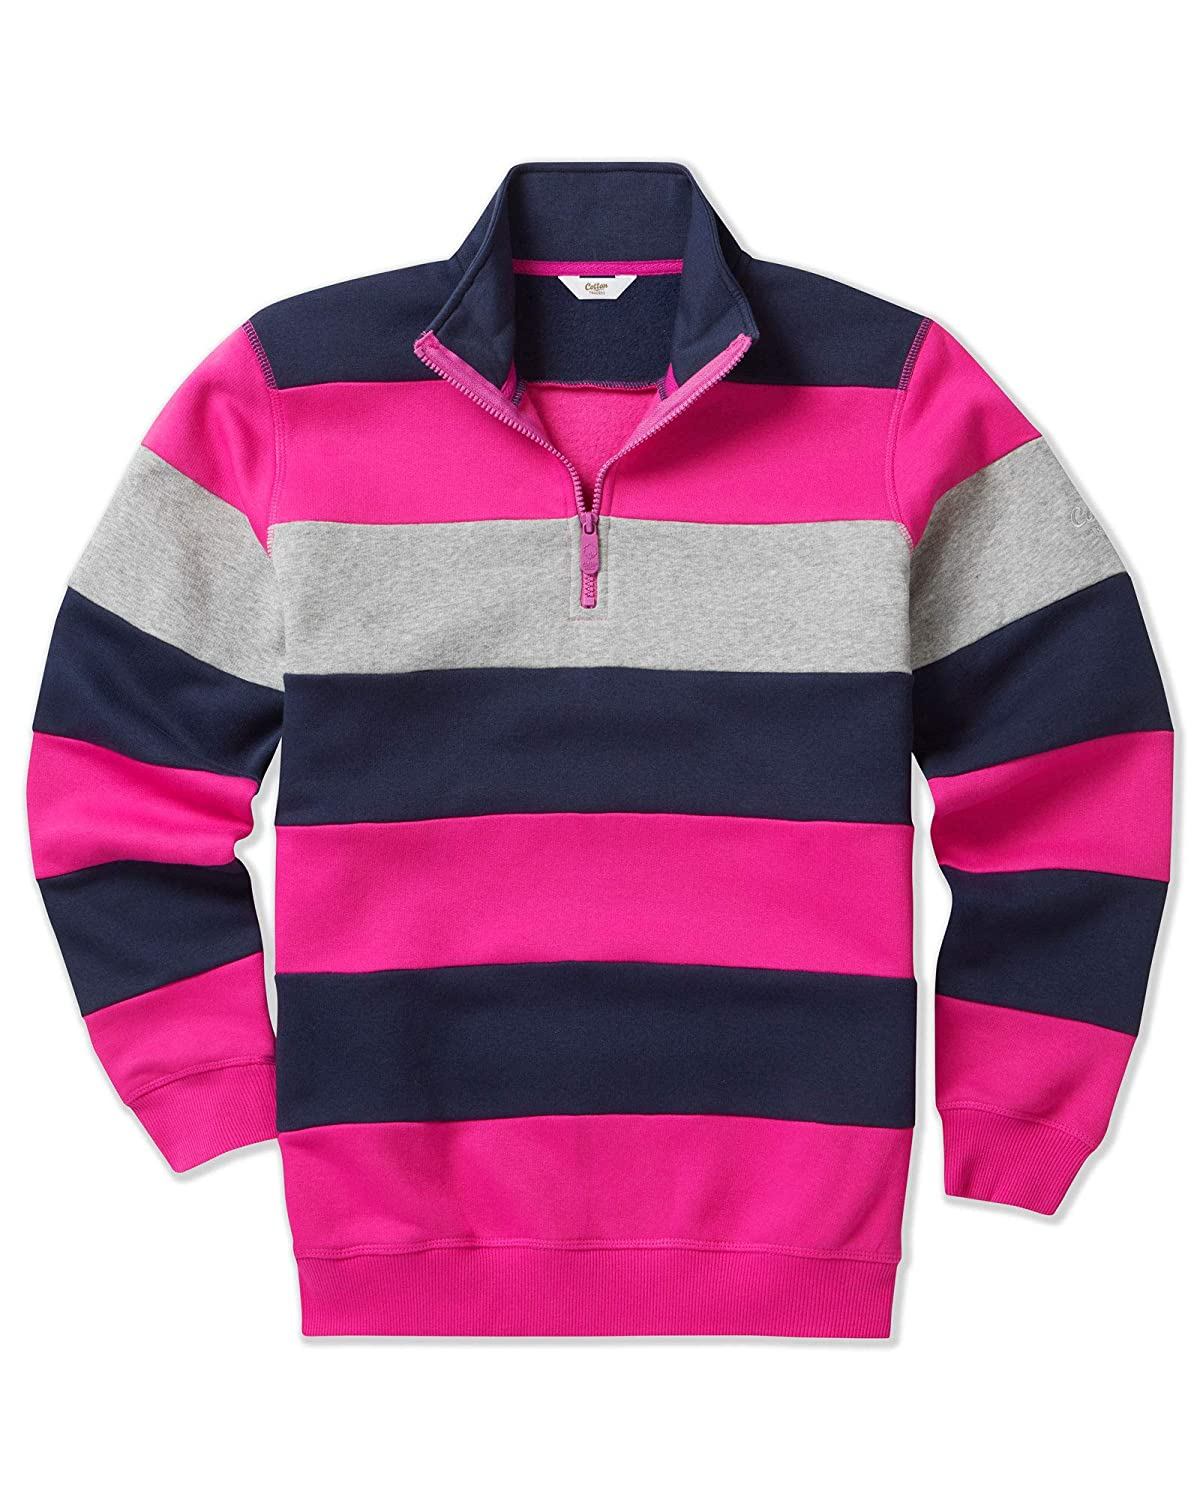 Cotton Traders Mens Long Sleeve Casual Striped Fleece Sweatshirt